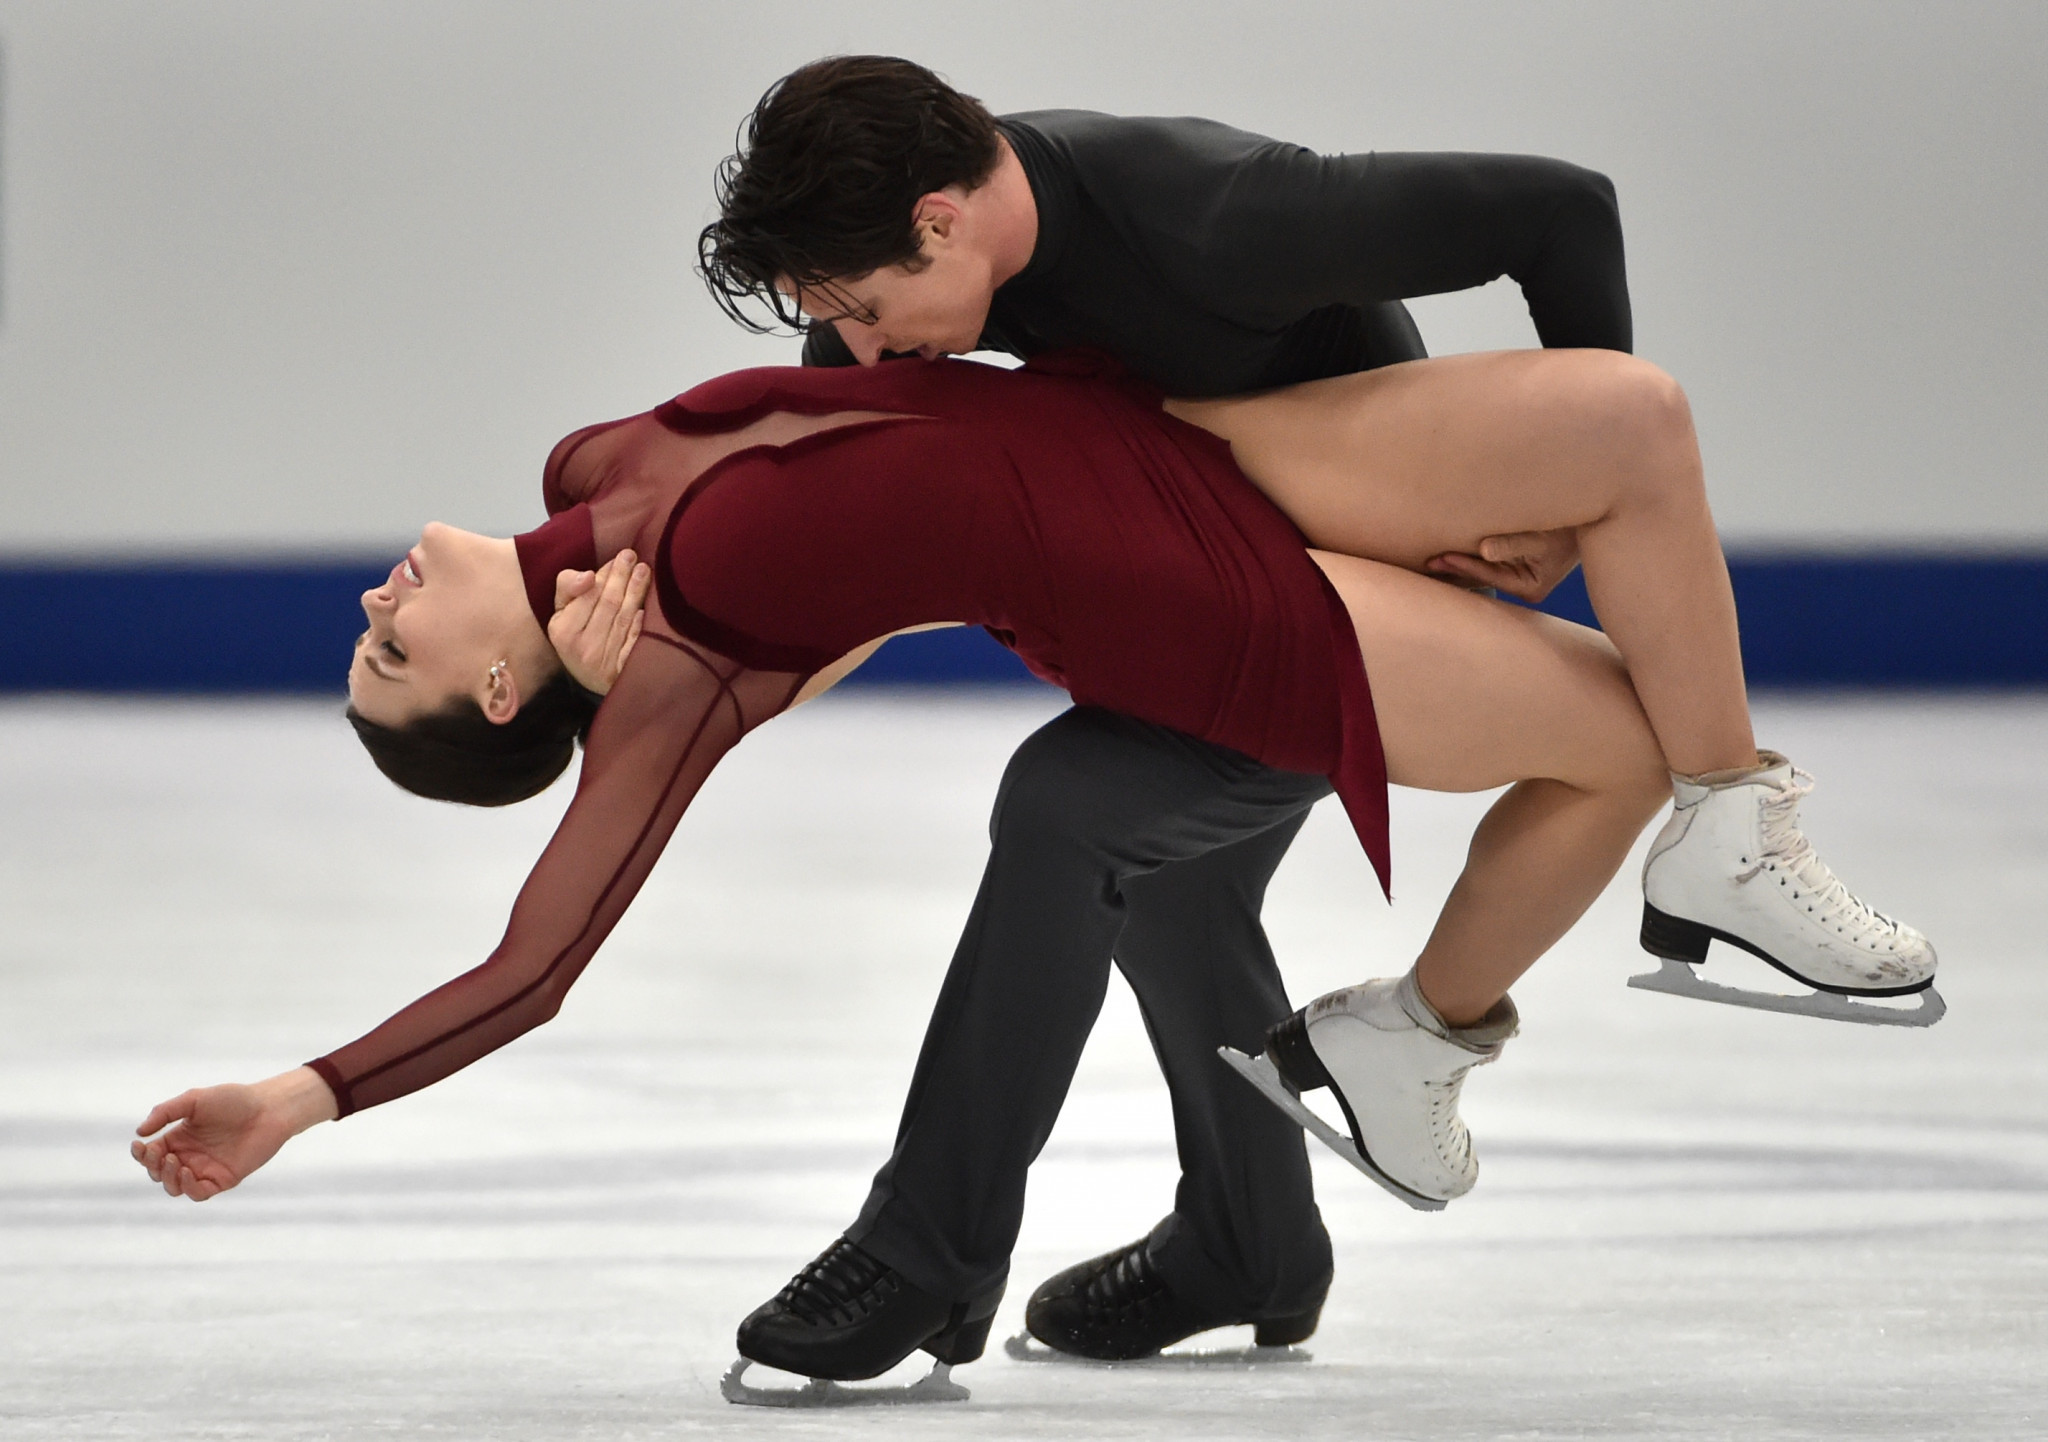 Tessa Virtue and Scott Moir, of Canada, win gold for their free dance at the Grand Prix of Figure Skating 2017/2018 NHK Trophy in Osaka ©Getty Images